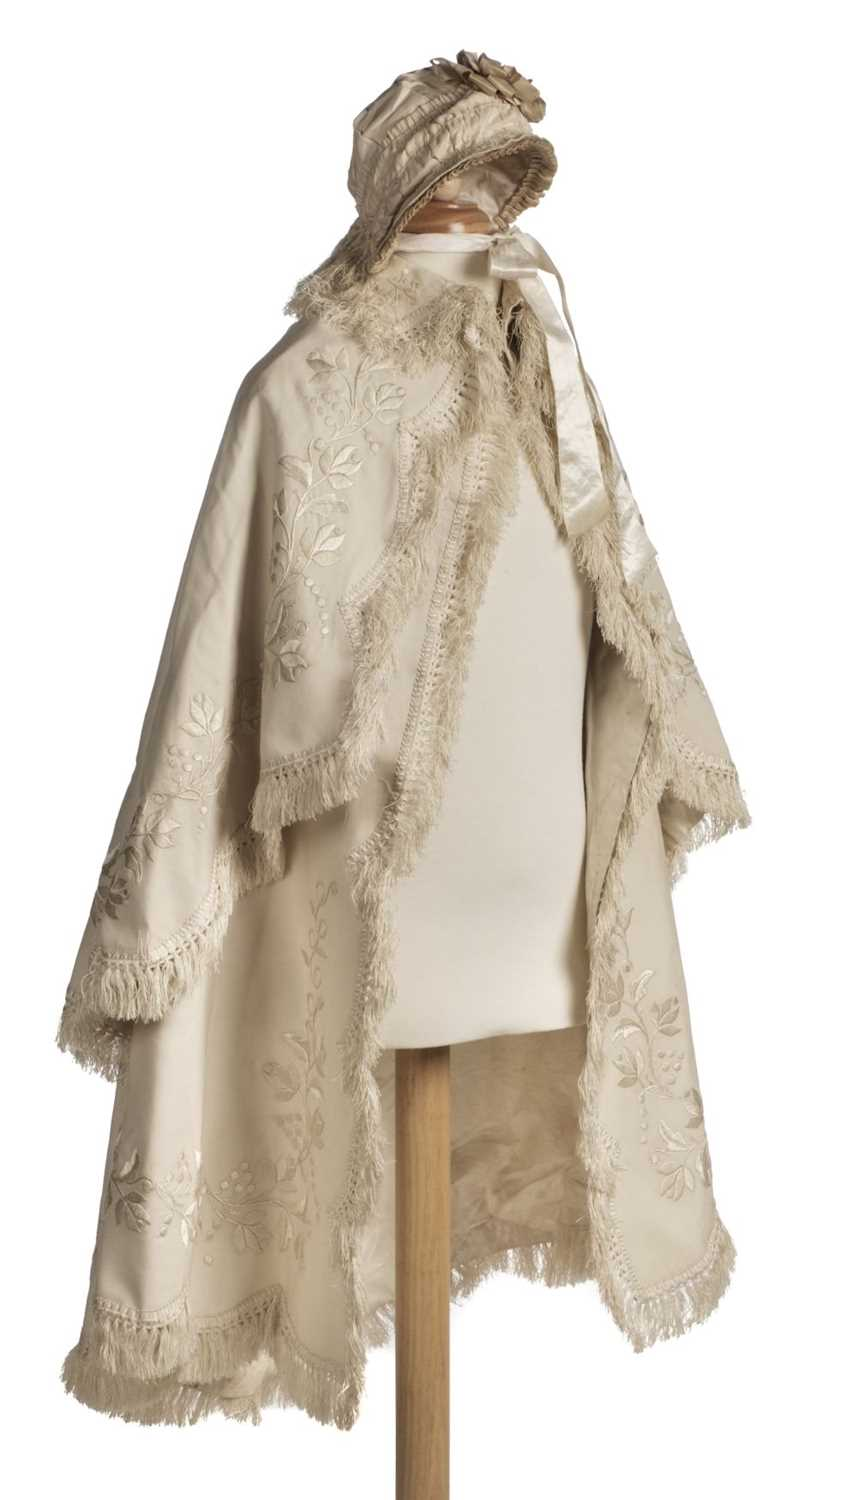 Lot 288 - Children's clothes. A christening cape, late Victorian or Edwardian